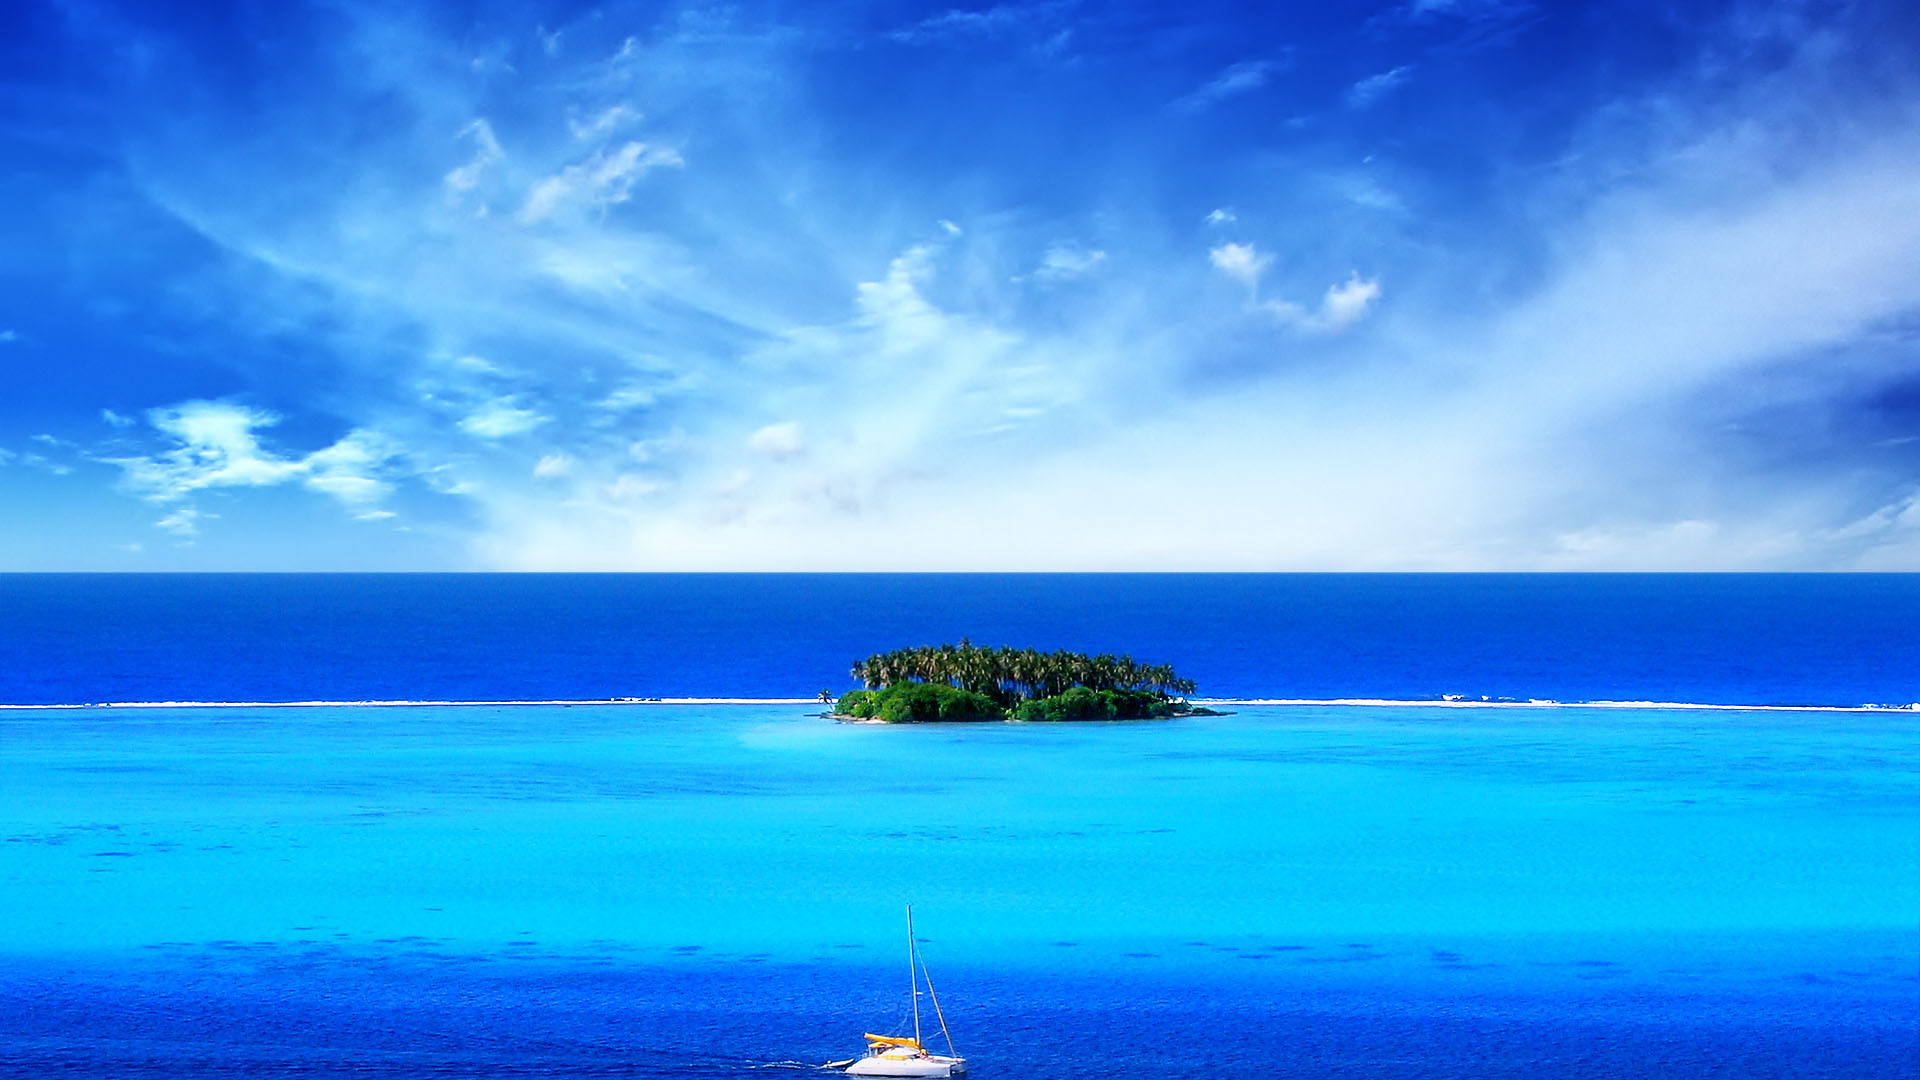 Tropical Island Wallpaper Tropical Island Wallpaper 1920x1080